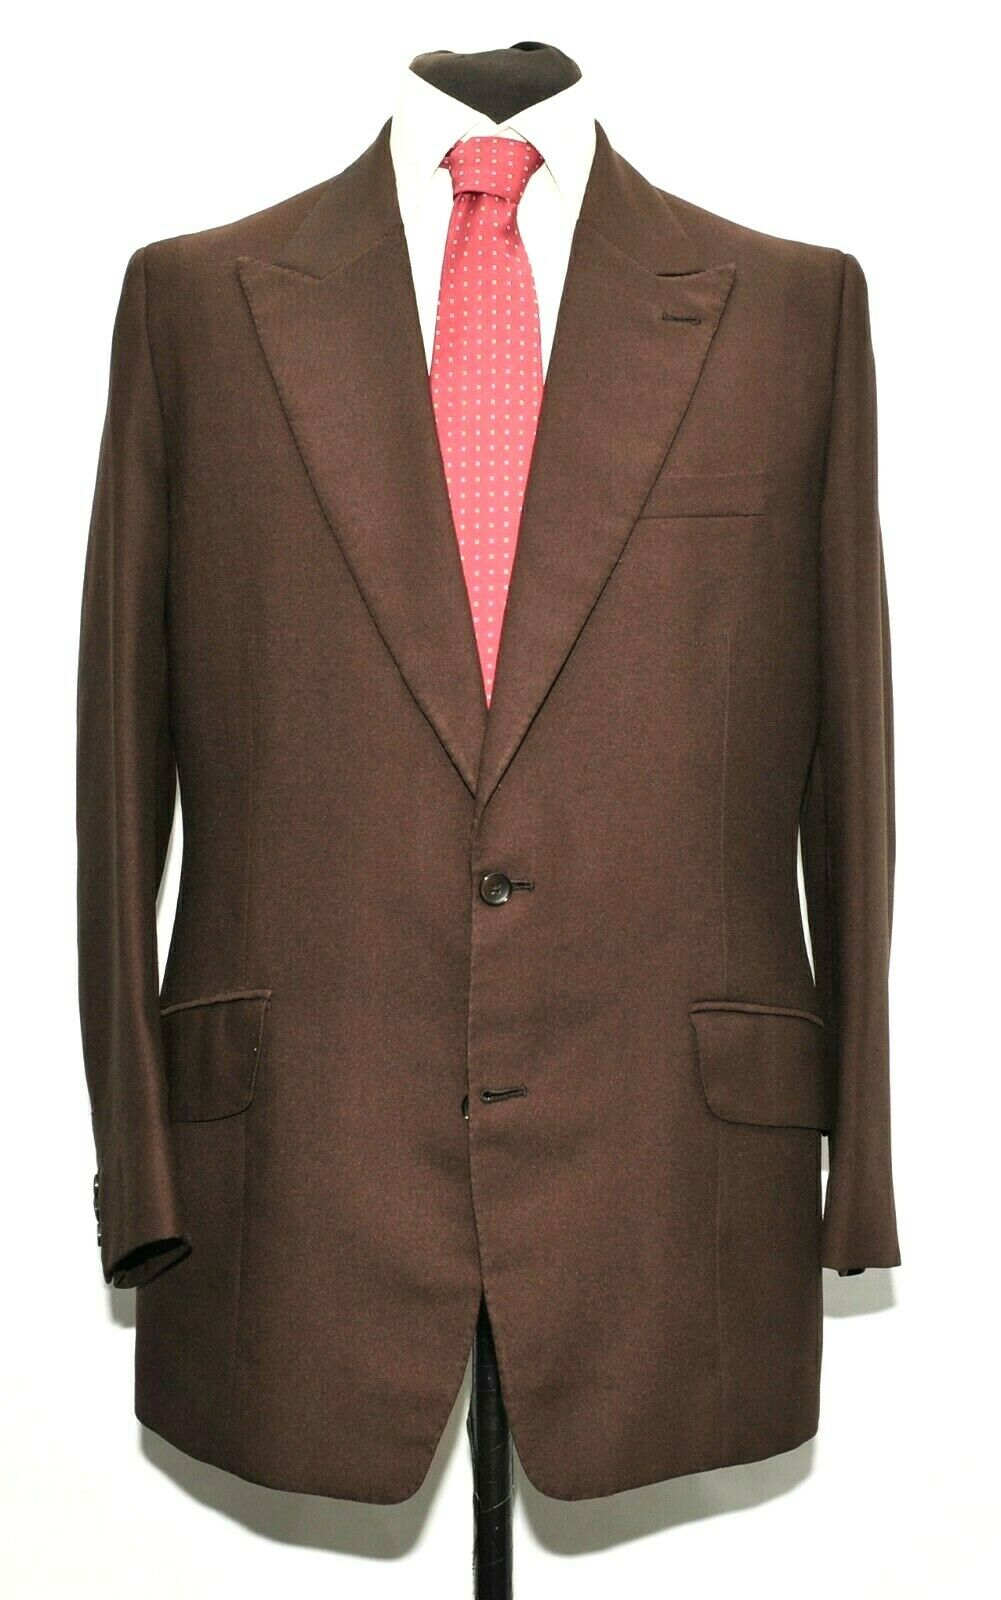 VINTAGE PEAK LAPEL BESPOKE  TAYLOR COULSON SAVILE ROW BROWN SUIT 42'' R 1970'S